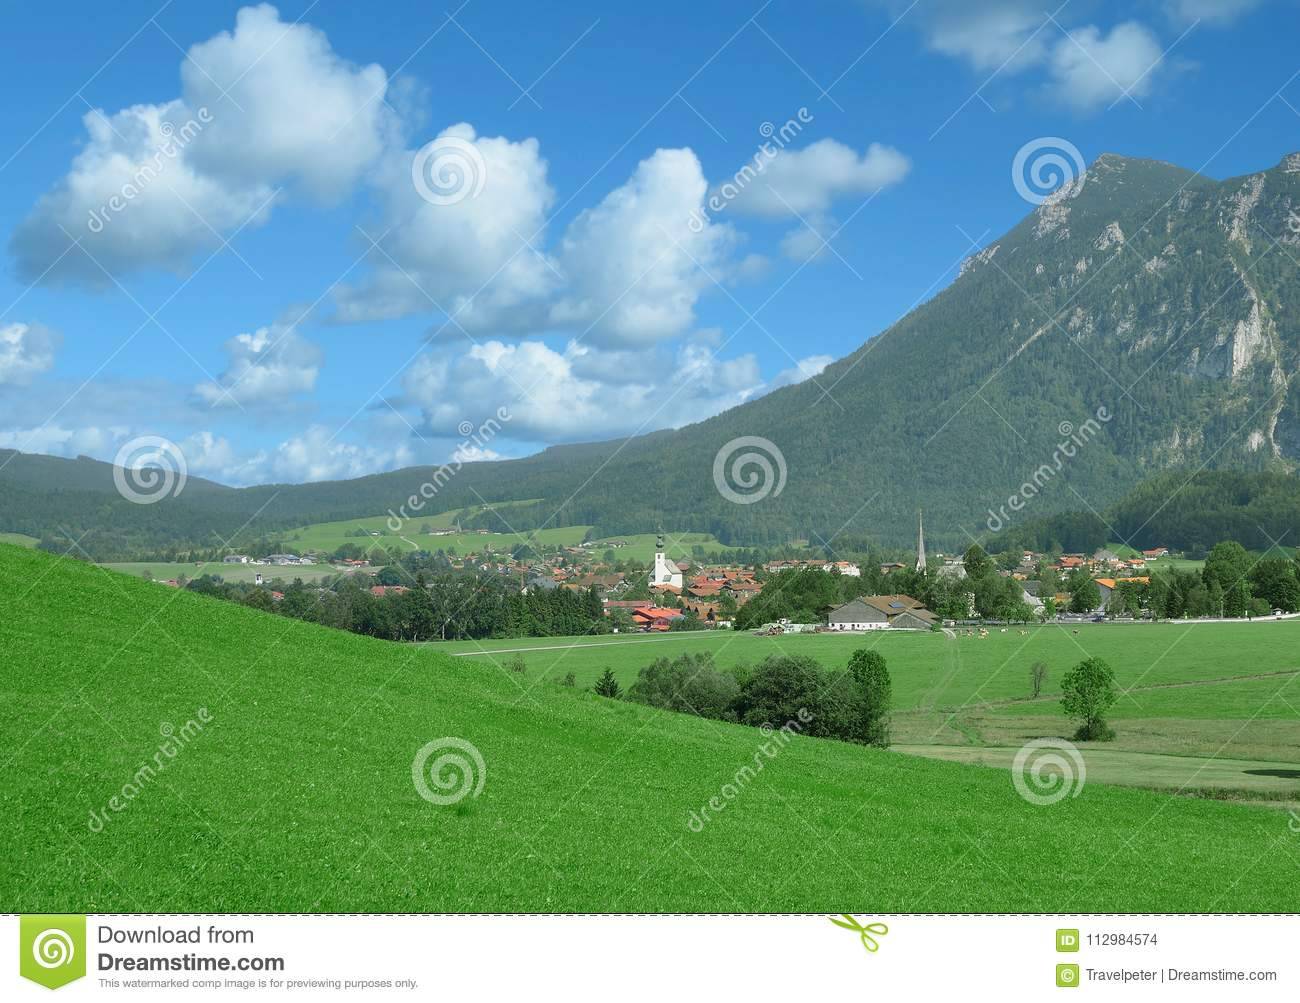 Village of Inzell,Chiemgau,upper Bavaria,Germany